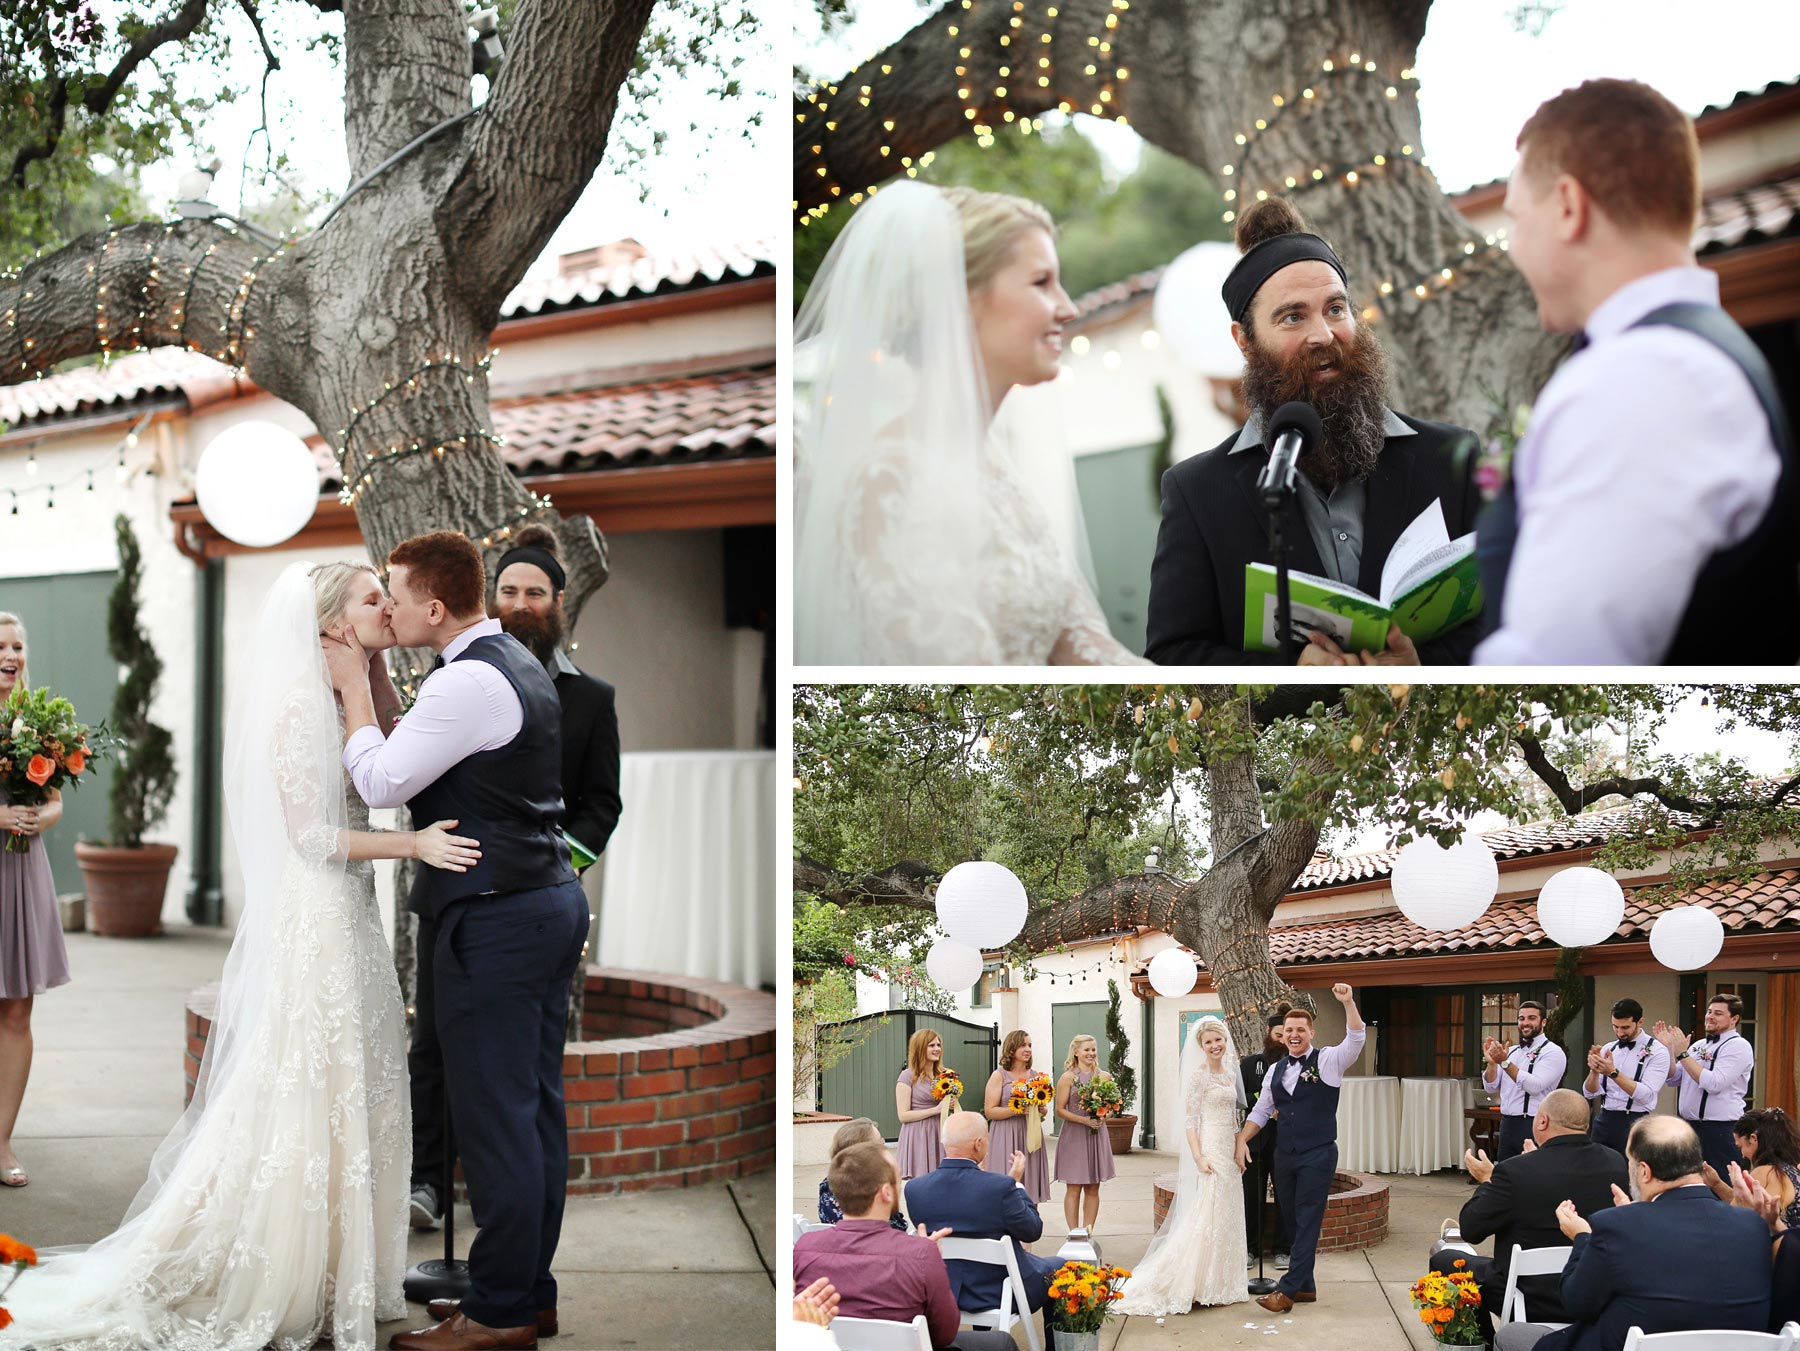 08-La-Canada-Flintridge-California-Wedding-Photographer-by-Andrew-Vick-Photography-Fall-Autumn-Destination-Ceremony-Bride-Groom-Vows-Childrens-Book-Giving-Tree-Kiss-Fawn-and-Jay.jpg